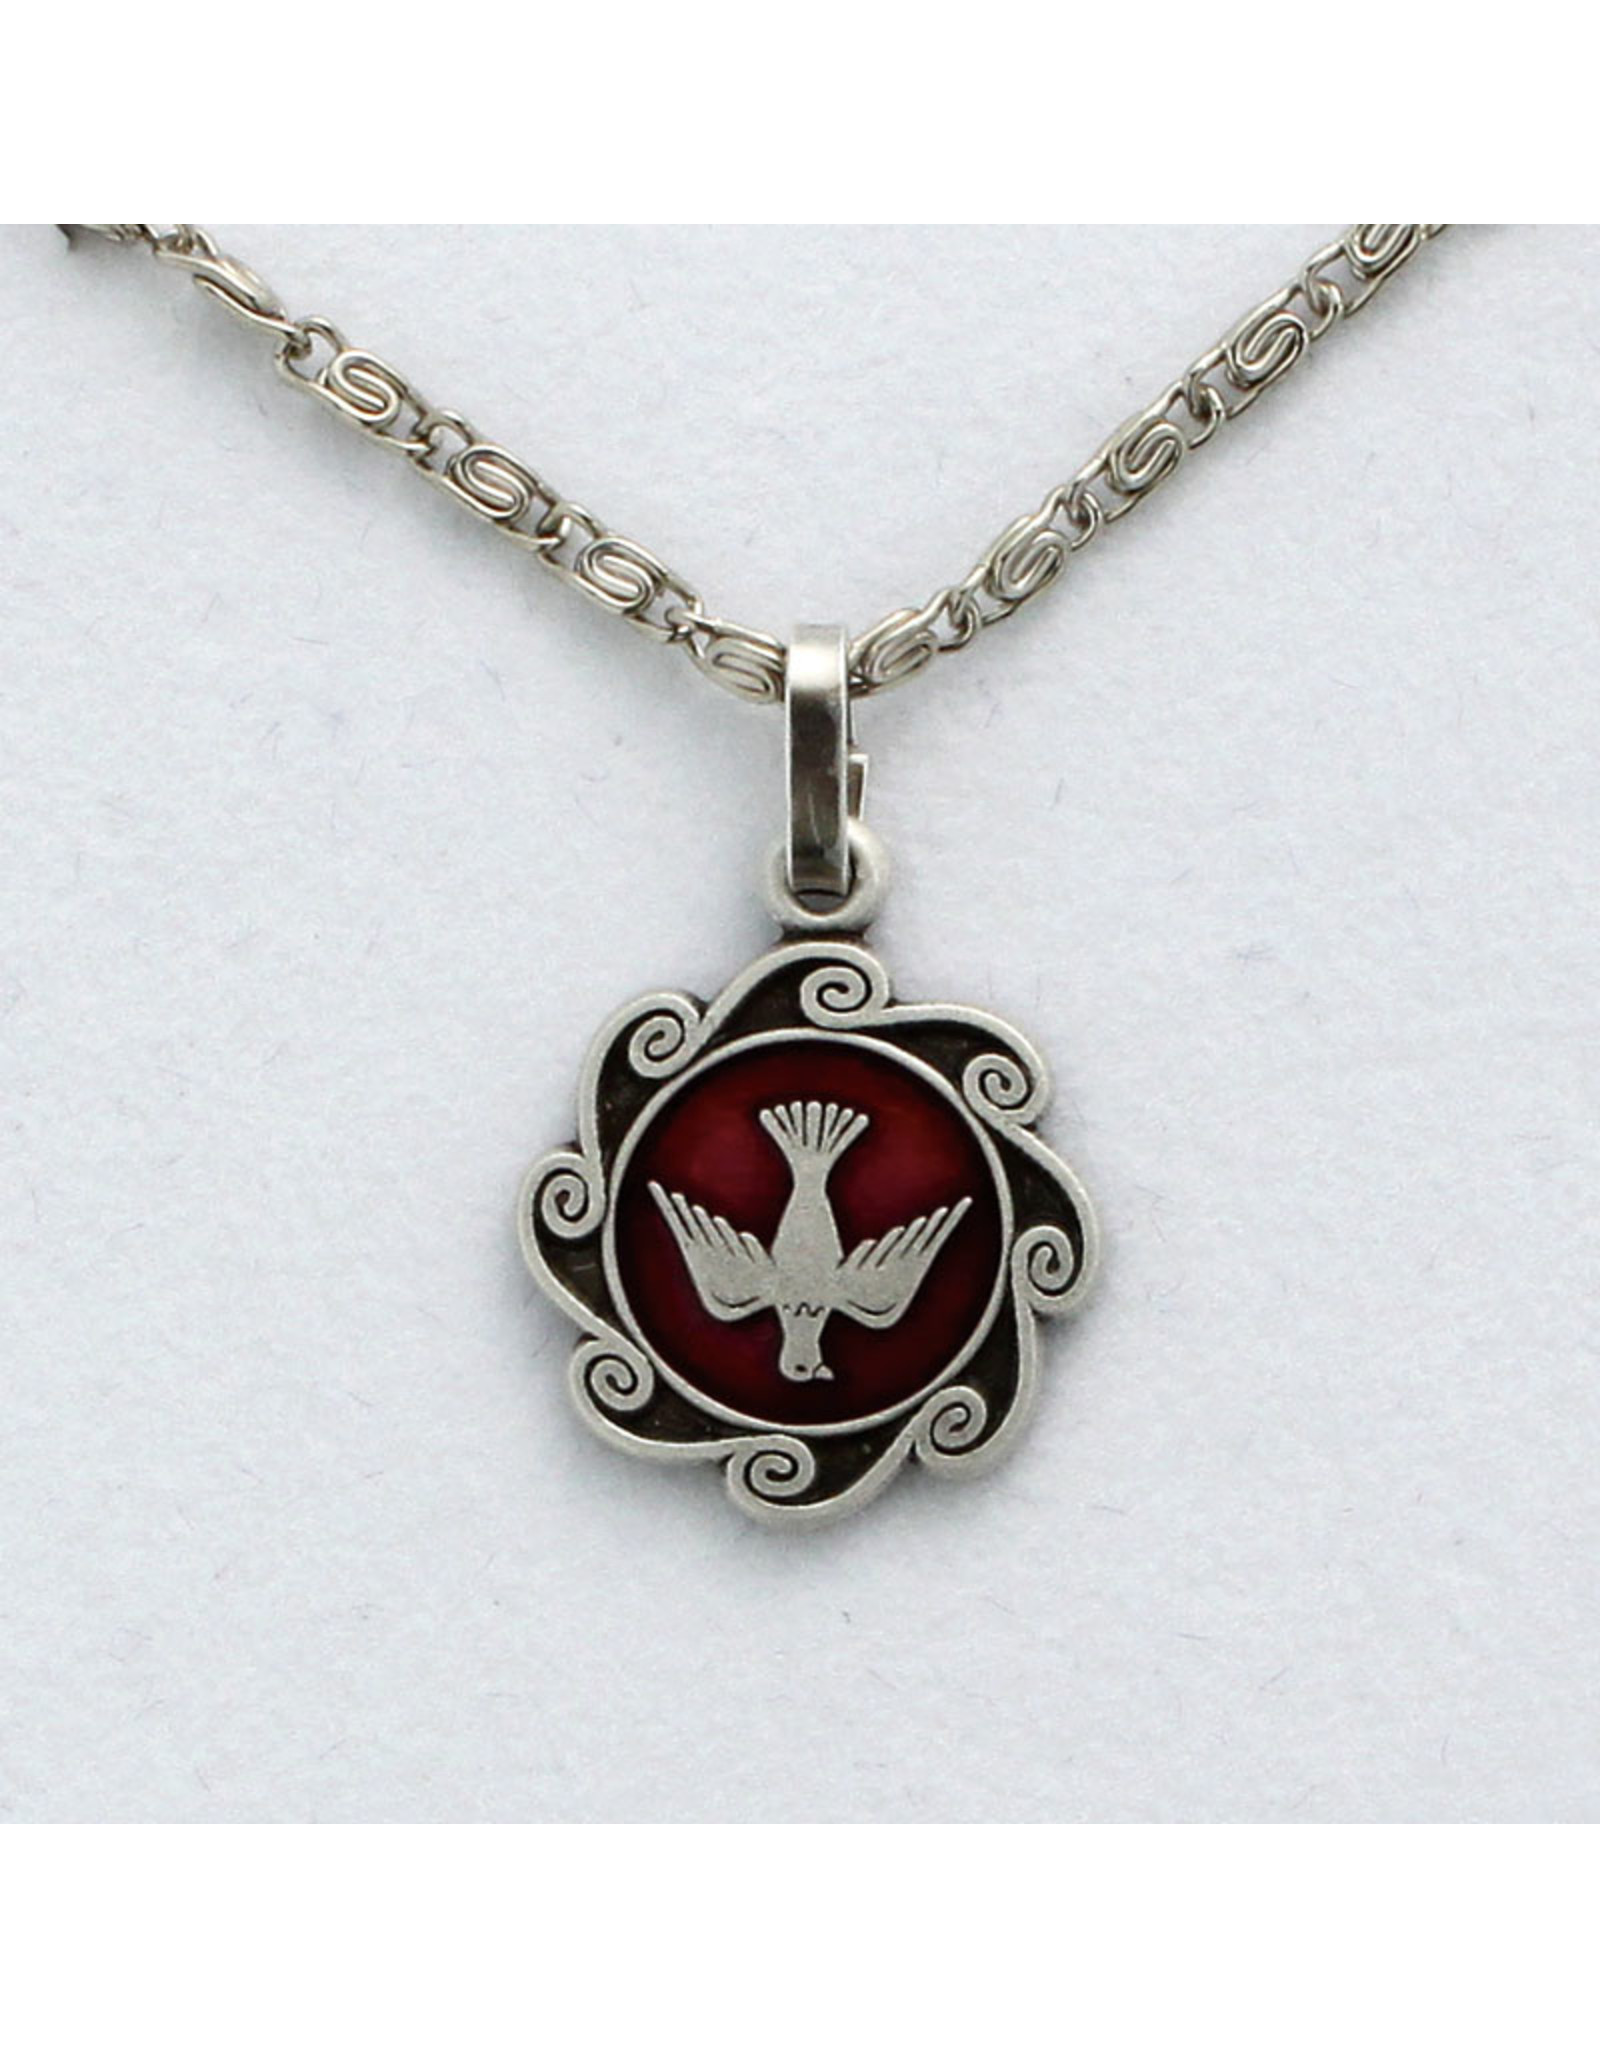 Necklace Holy Spirit with Scroll Chain